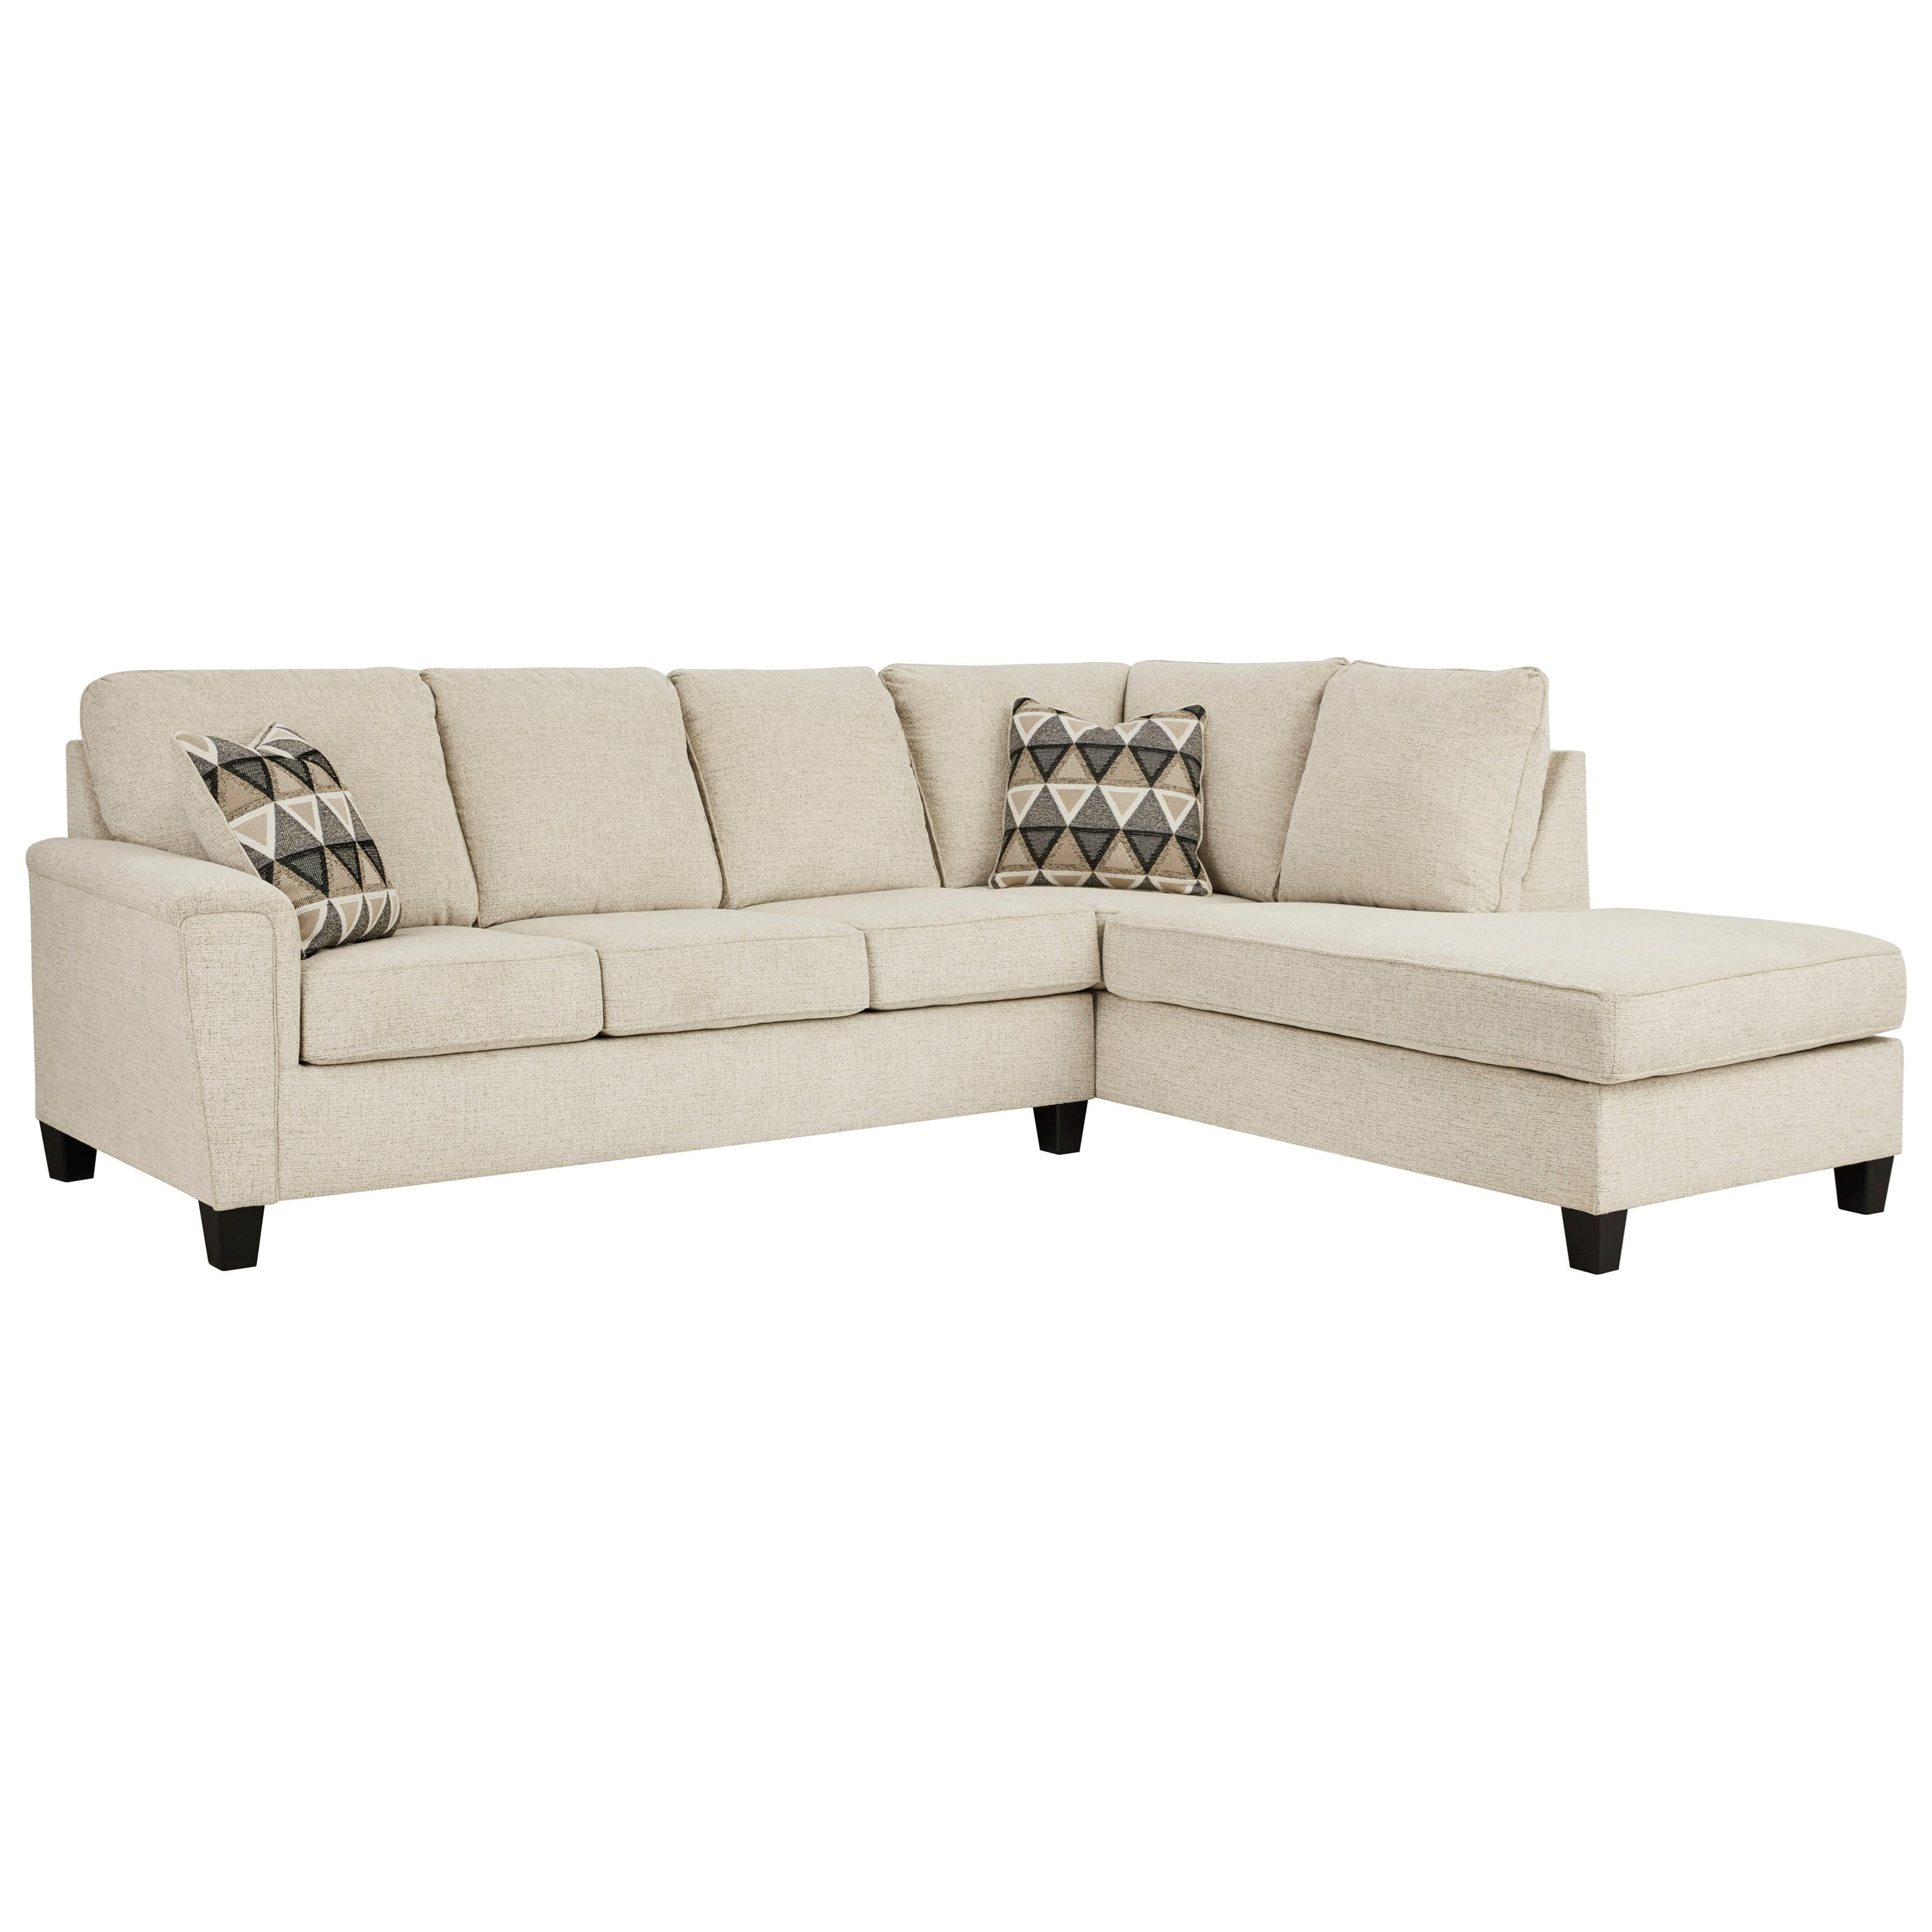 Abinger 2-Piece Sectional w/ Chaise and Sleeper by Signature Design by Ashley at Catalog Outlet